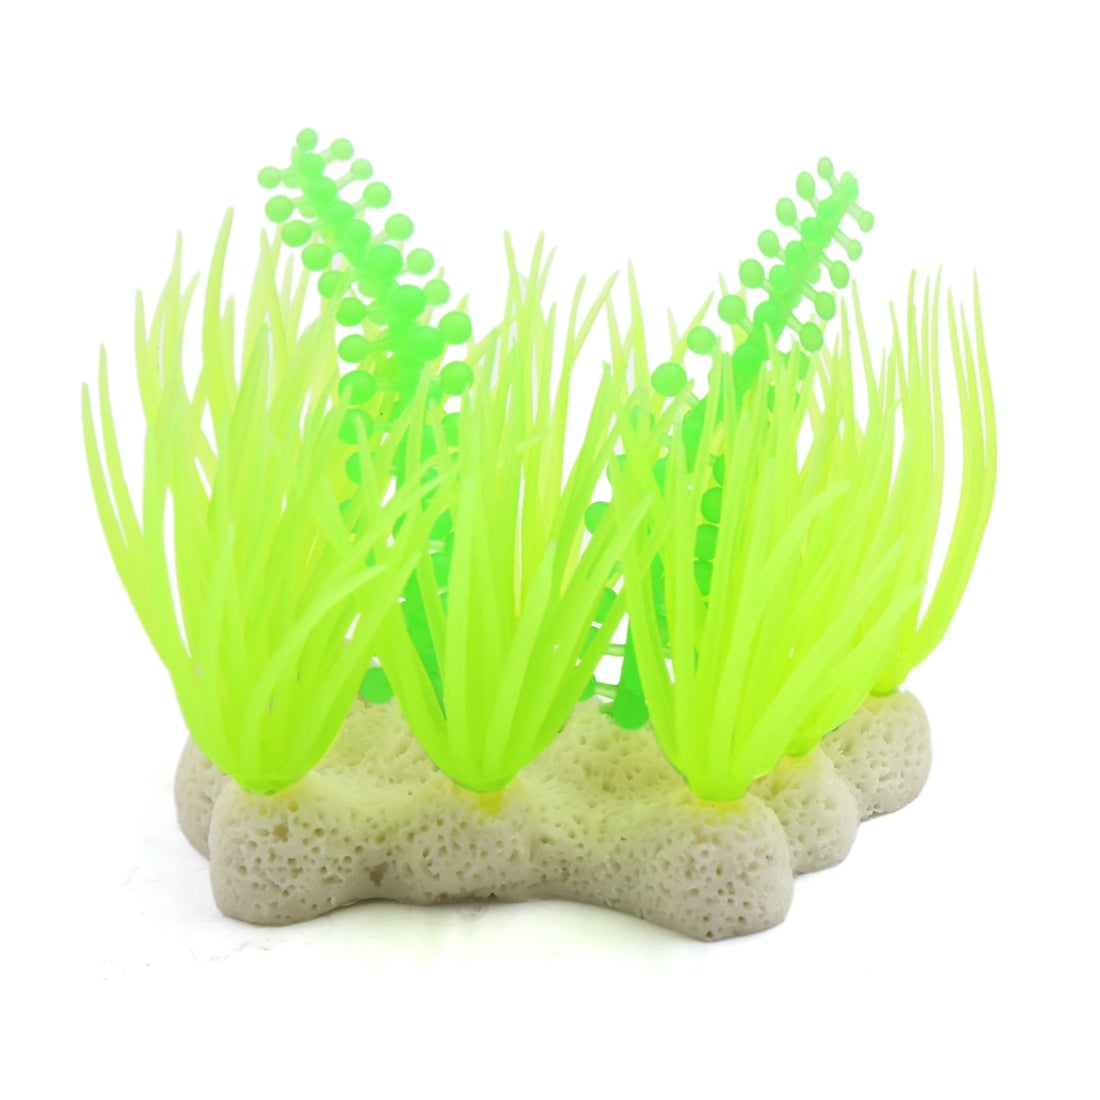 Aquarium Simulation Silicone Coral Sea Anemone Artificial Aquatic Plants Fish Tank Landscape Decoration